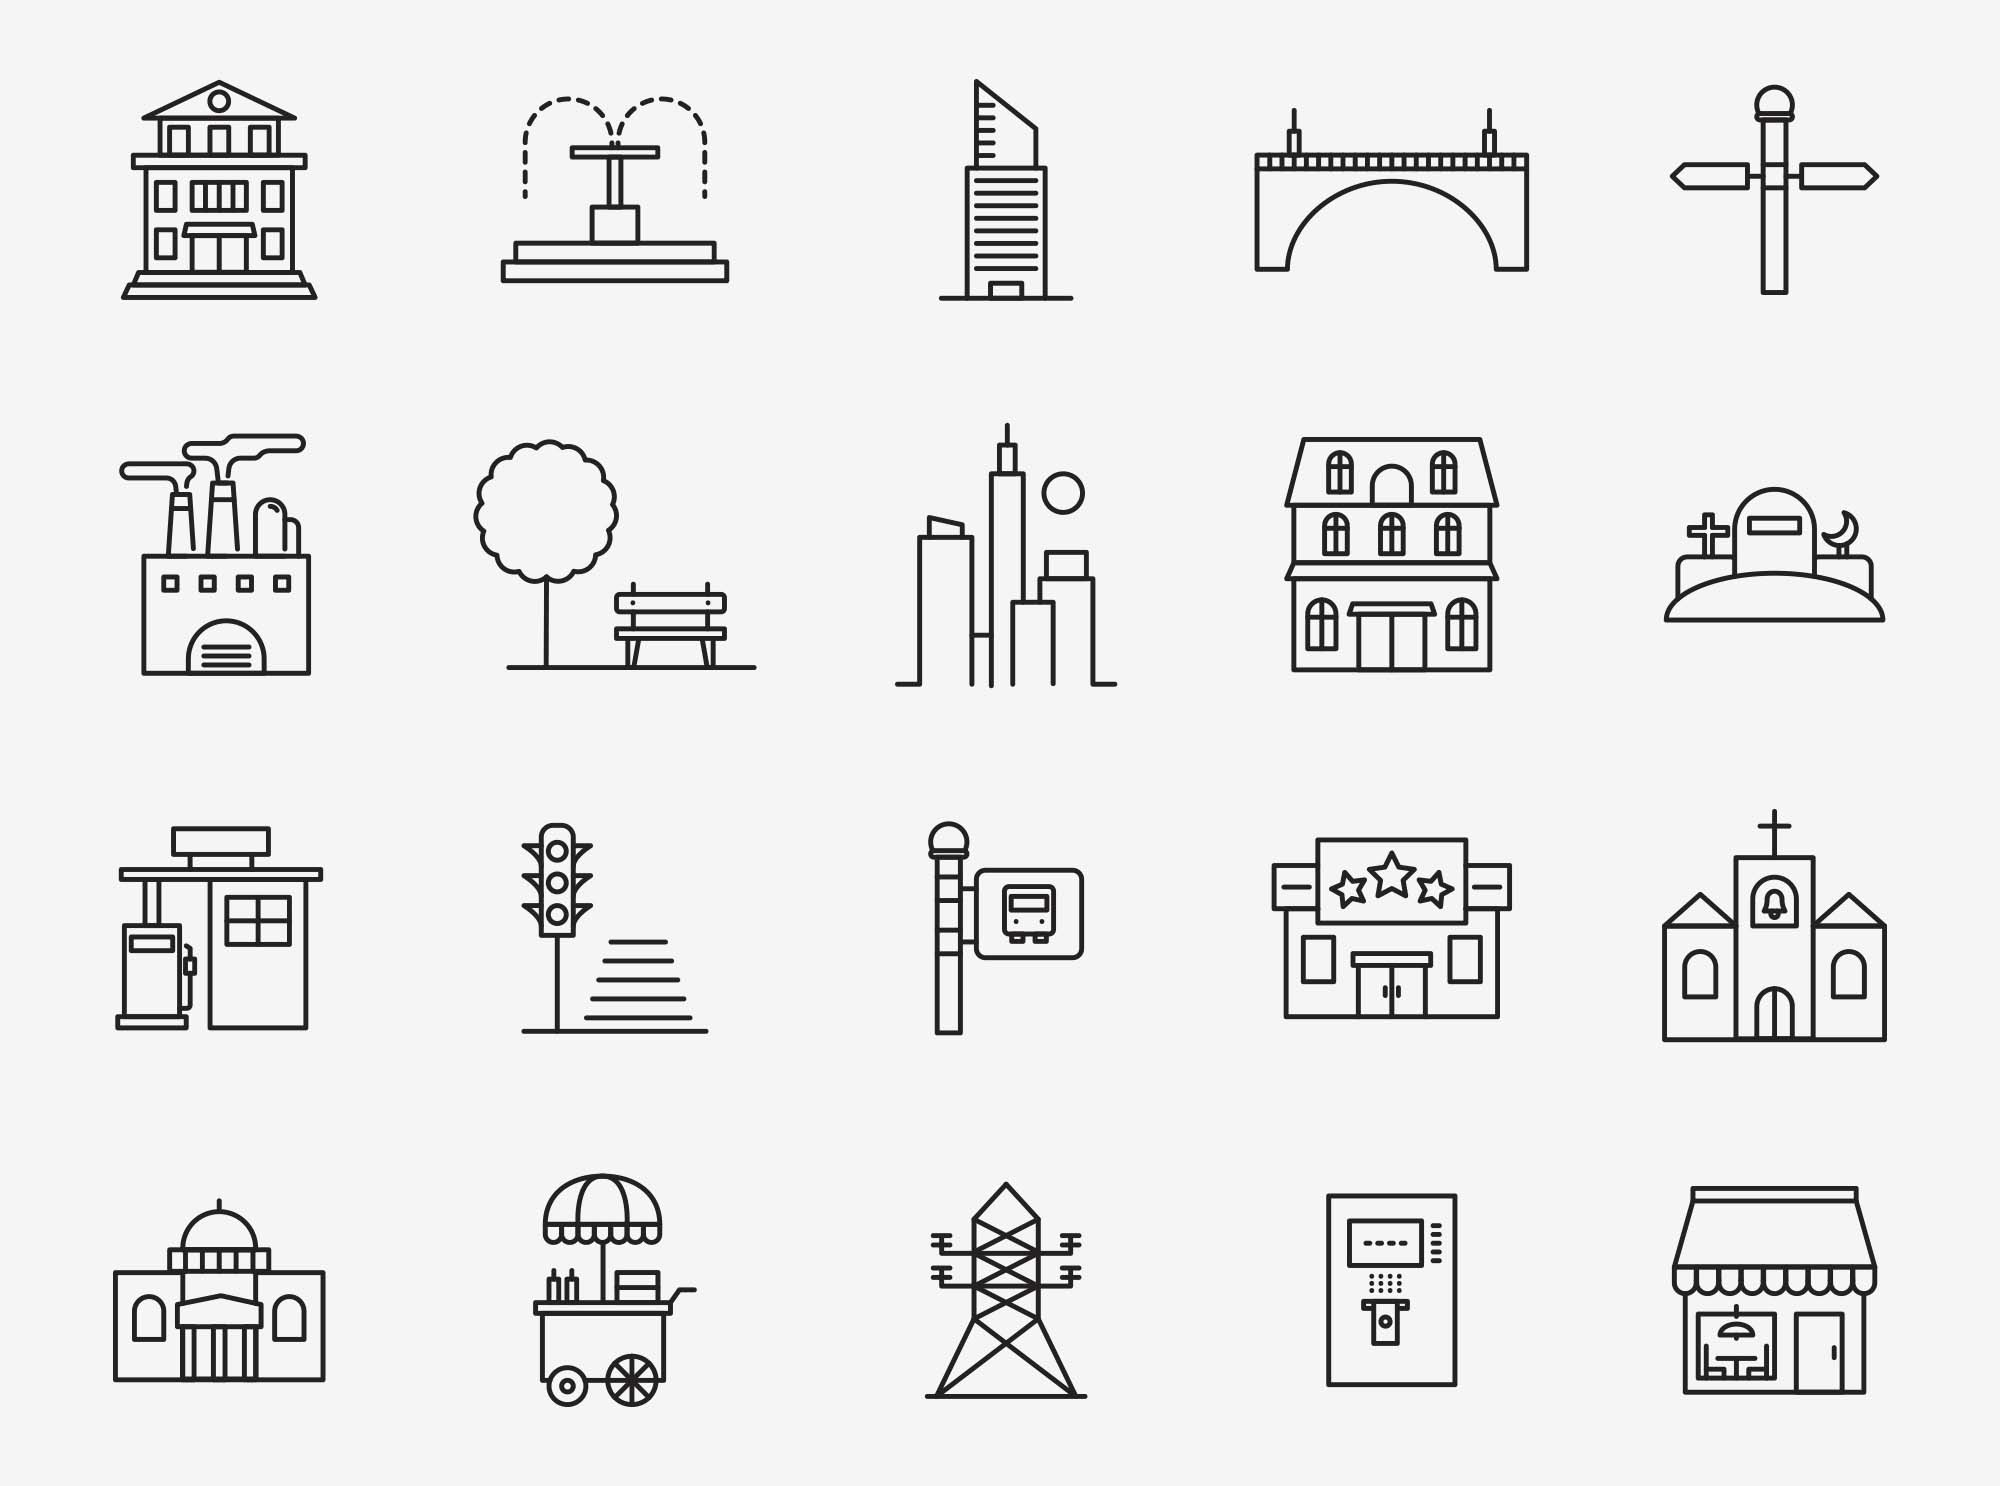 Town Vector Icons